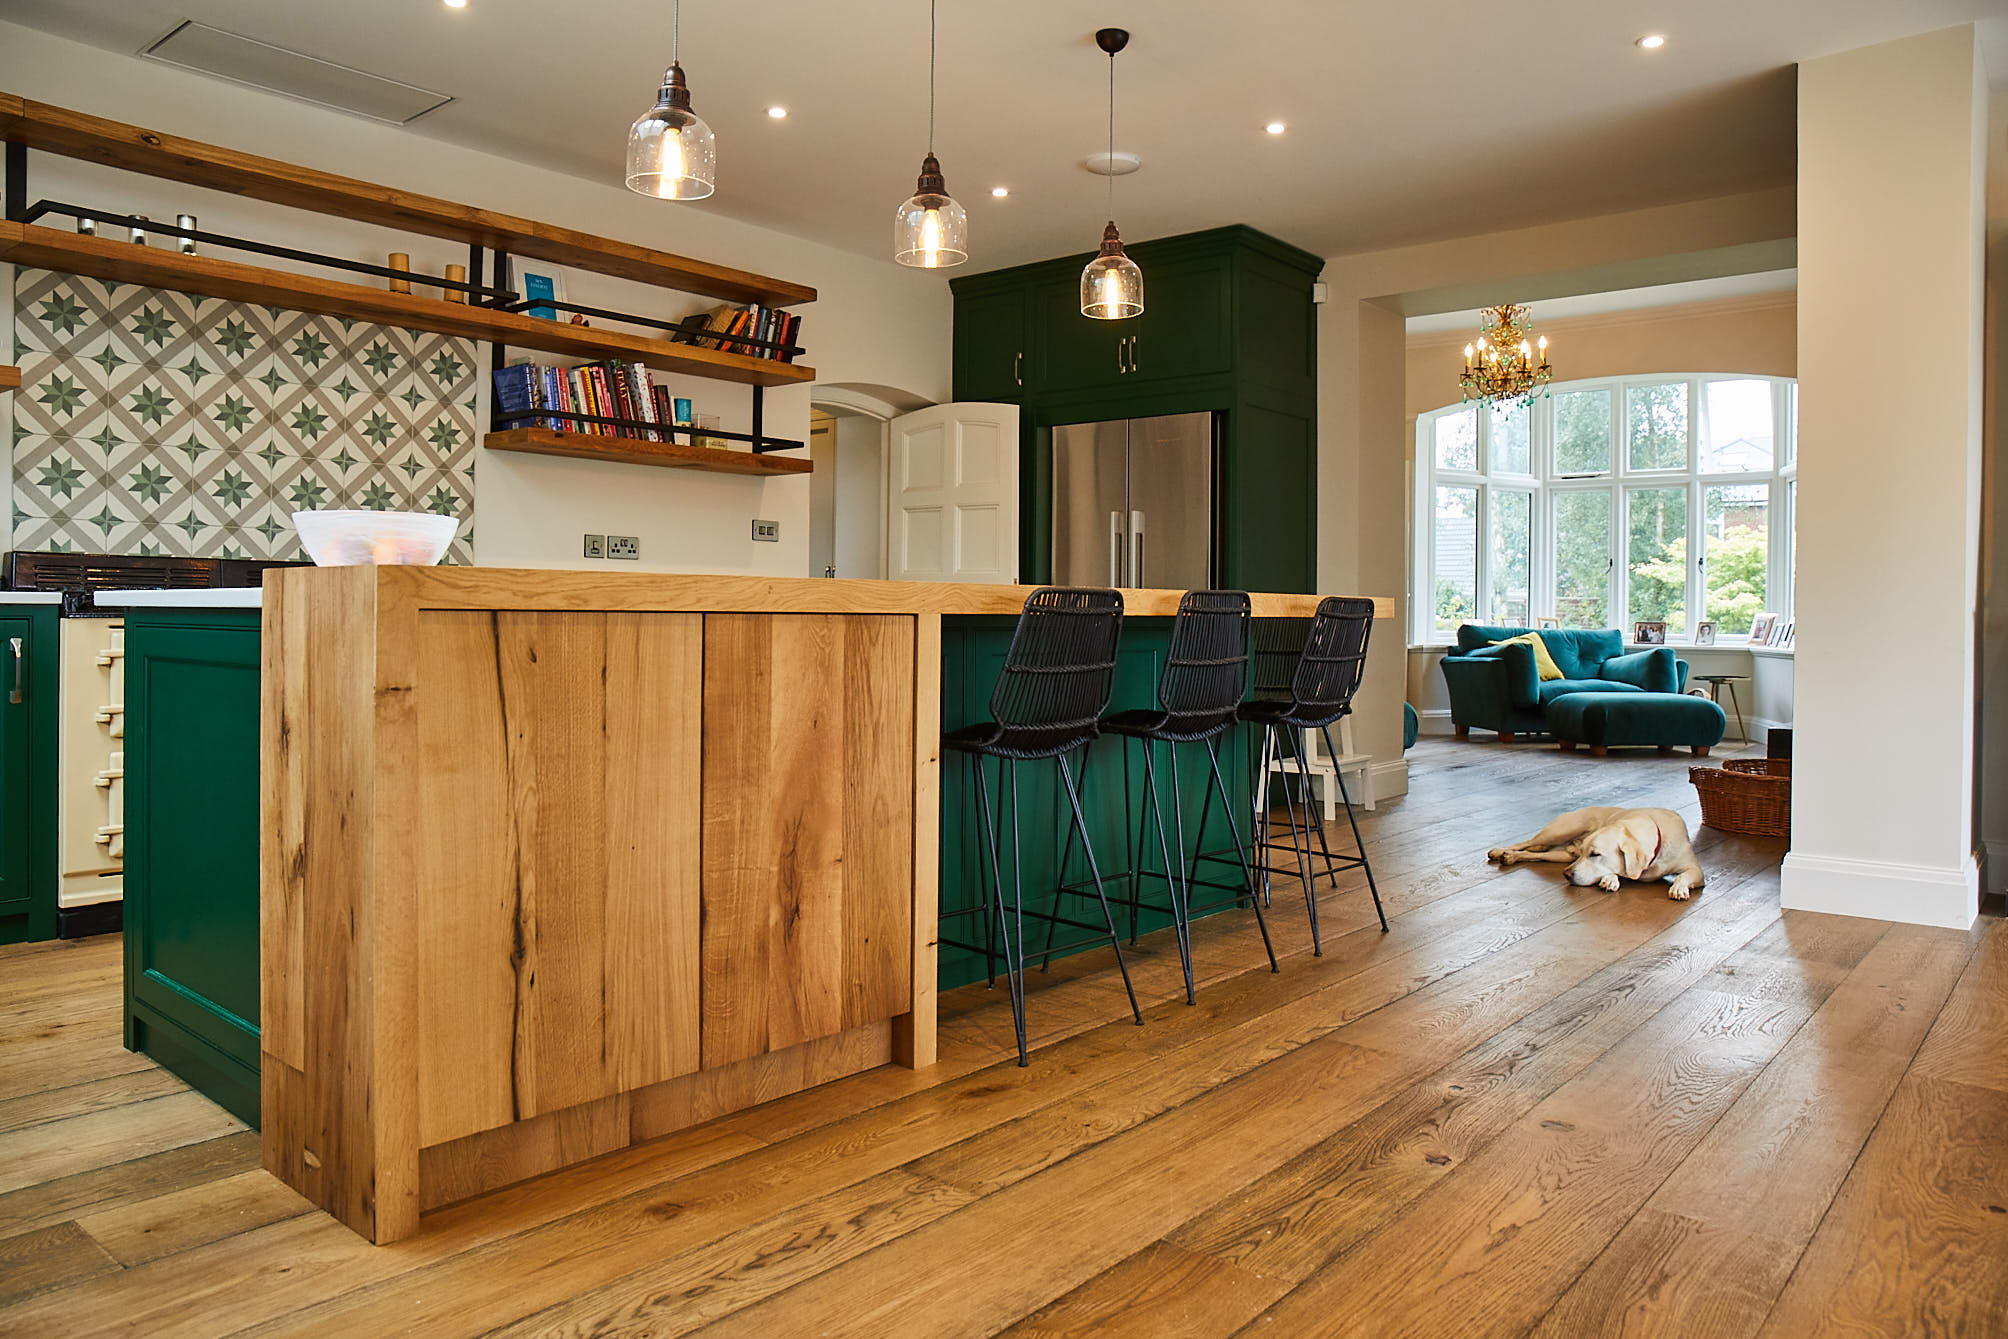 Dog sleeping in bespoke kitchen with green cabinets and oak breakfast bar